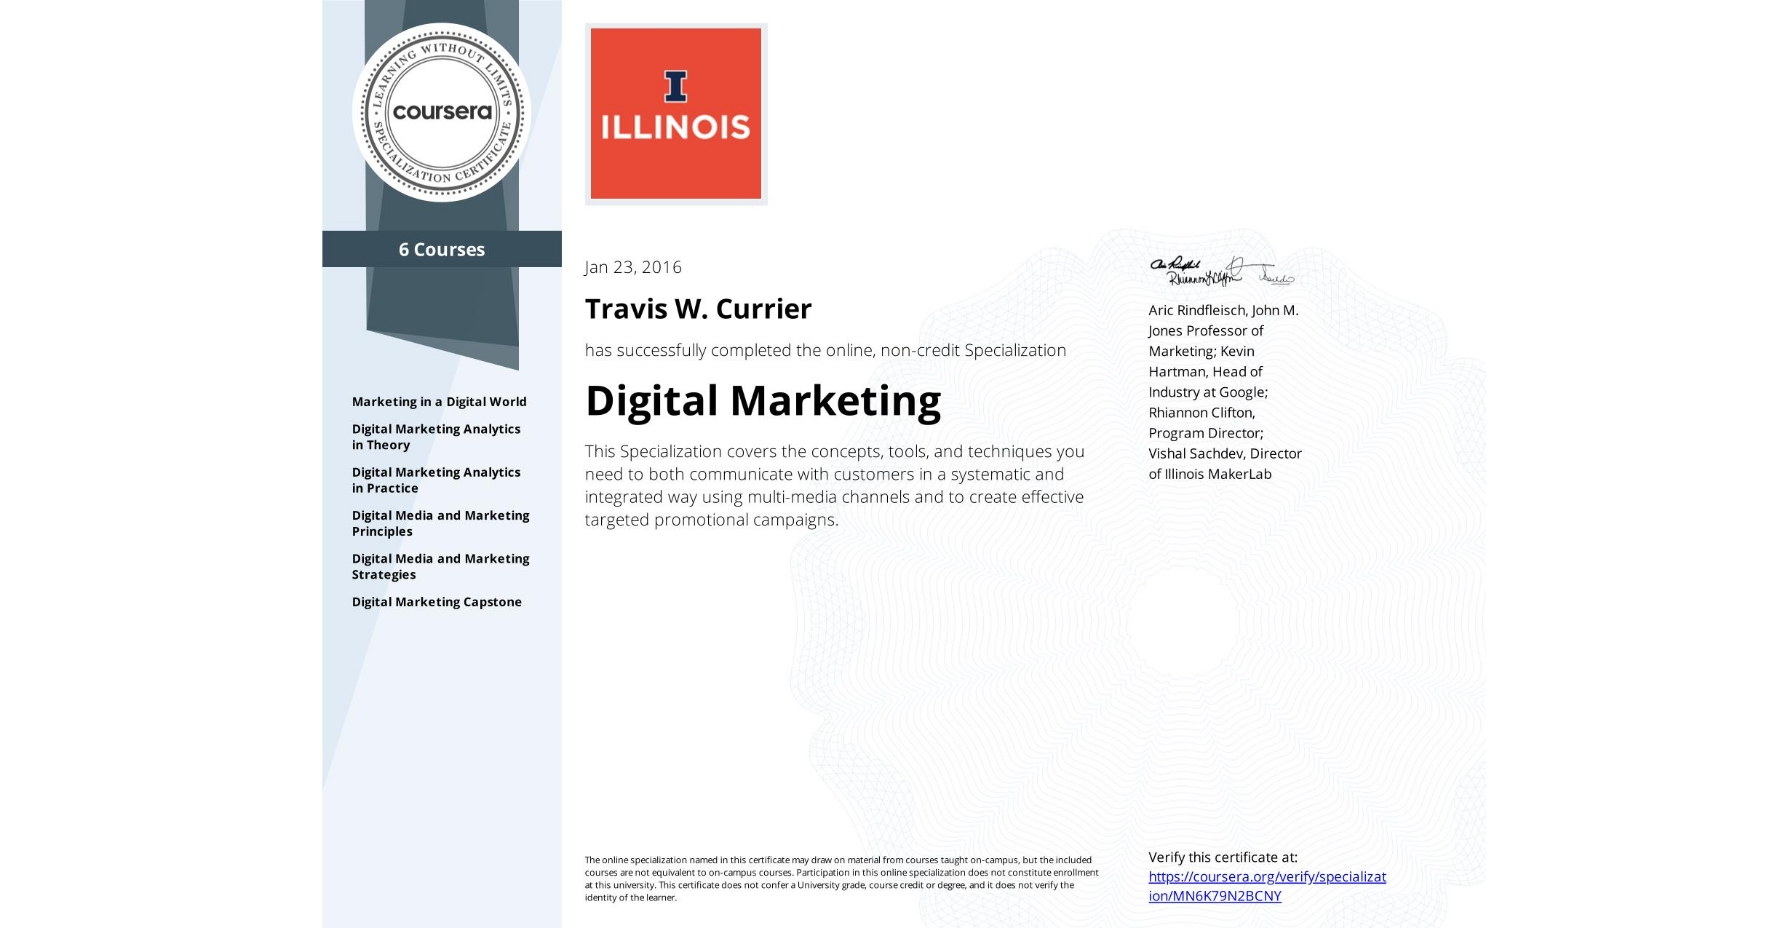 View certificate for Travis W. Currier, Digital Marketing, offered through Coursera. This Specialization covers the concepts, tools, and techniques you need to both communicate with customers in a systematic and integrated way using multi-media channels and to create effective targeted promotional campaigns.